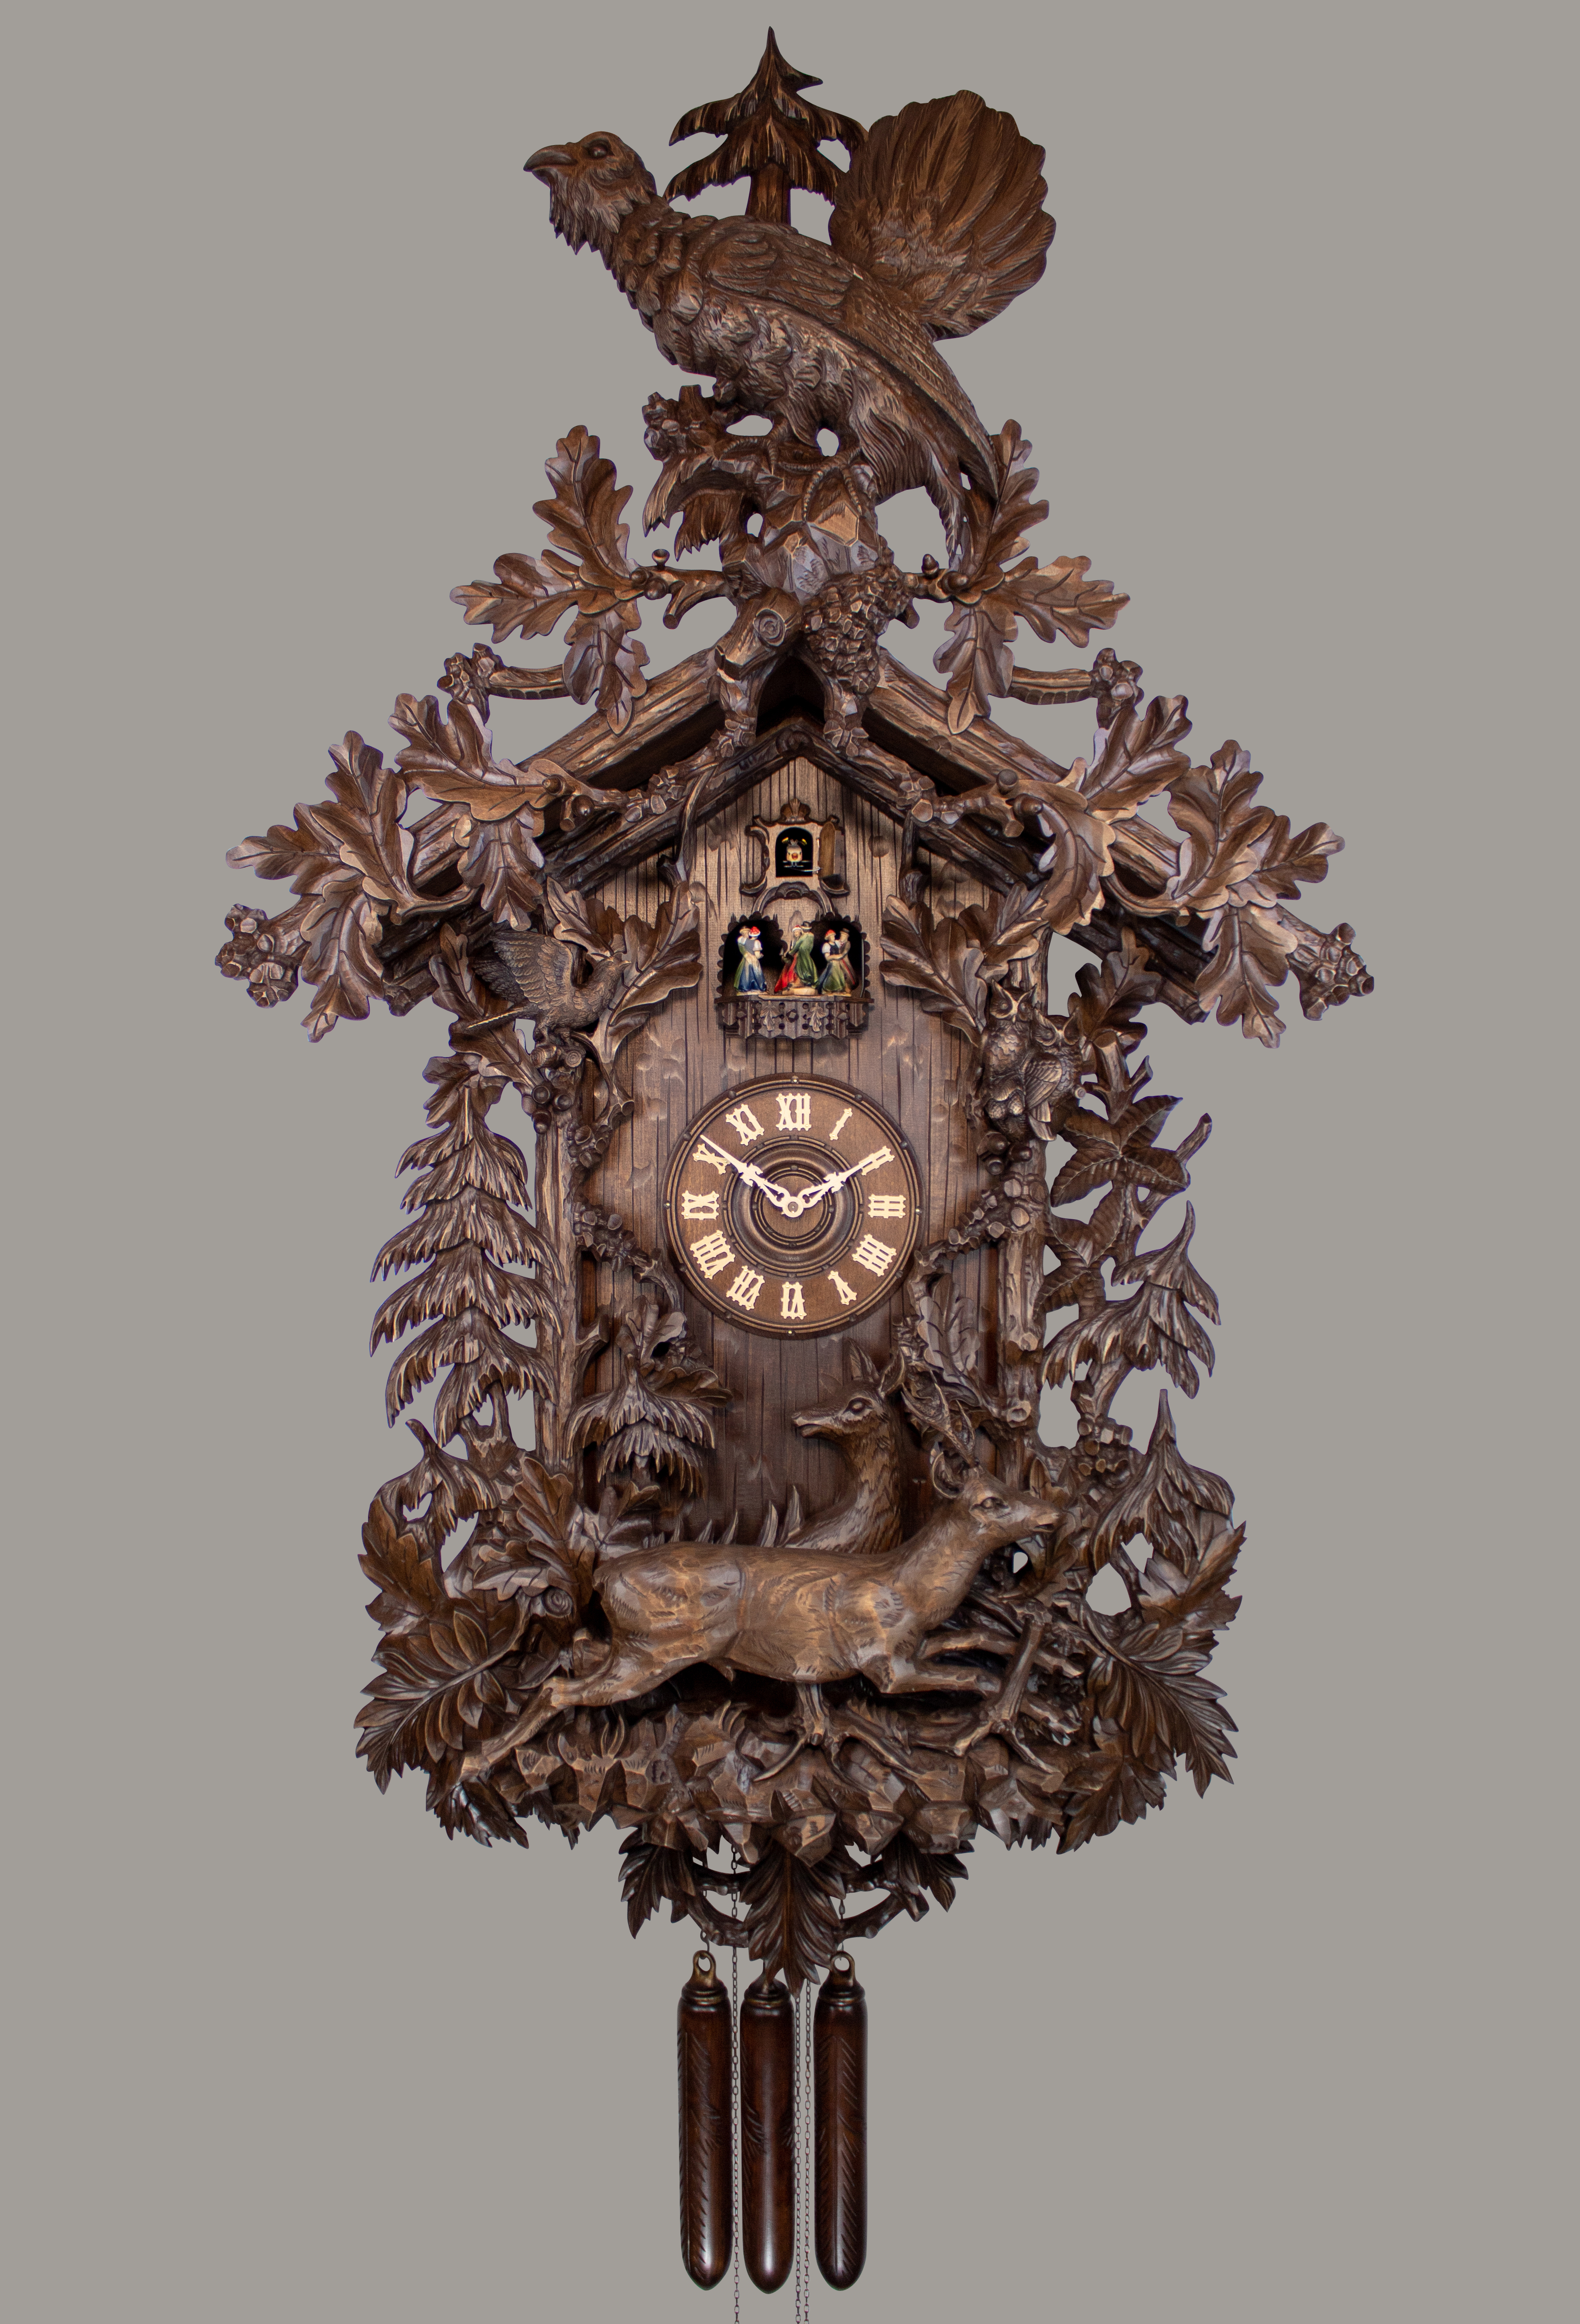 Historical 8 Days Music Dancer Cuckoo Clock with capercaillie and hunting scene with deers